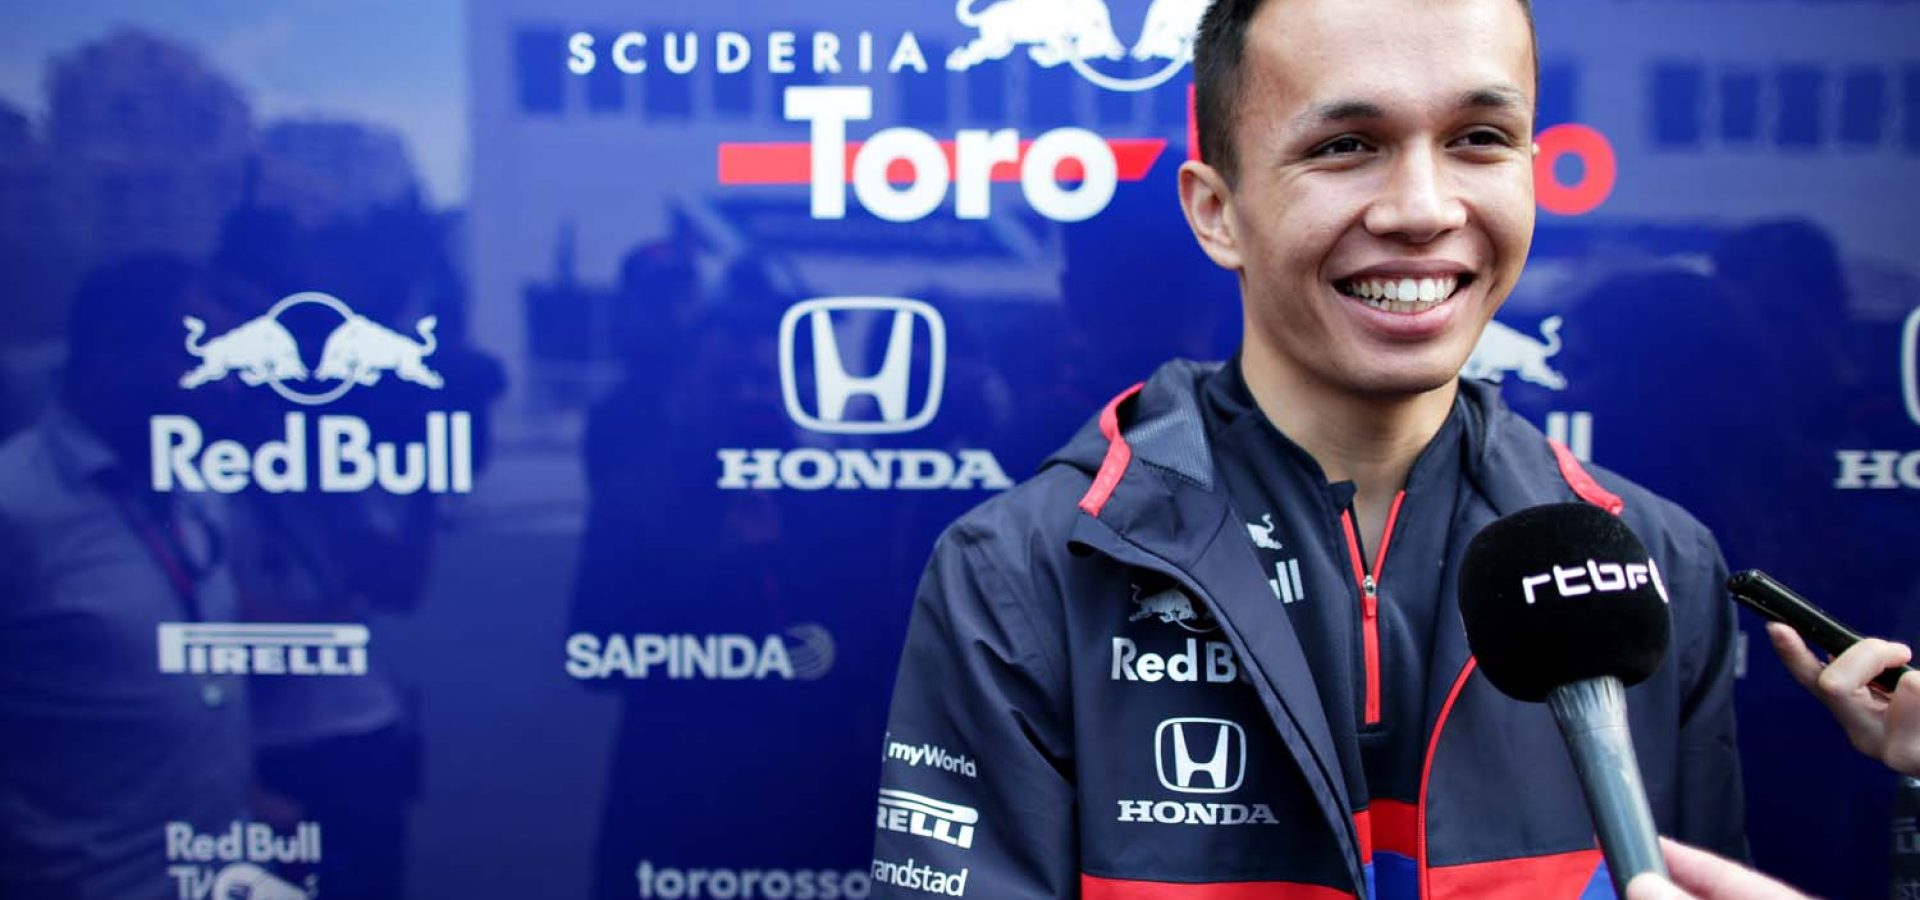 BAKU, AZERBAIJAN - APRIL 25: Alexander Albon of Thailand and Scuderia Toro Rosso talks to the media in the Paddock during previews ahead of the F1 Grand Prix of Azerbaijan at Baku City Circuit on April 25, 2019 in Baku, Azerbaijan. (Photo by Peter Fox/Getty Images) // Getty Images / Red Bull Content Pool  // AP-1Z4ZECWUW2511 // Usage for editorial use only // Please go to www.redbullcontentpool.com for further information. //